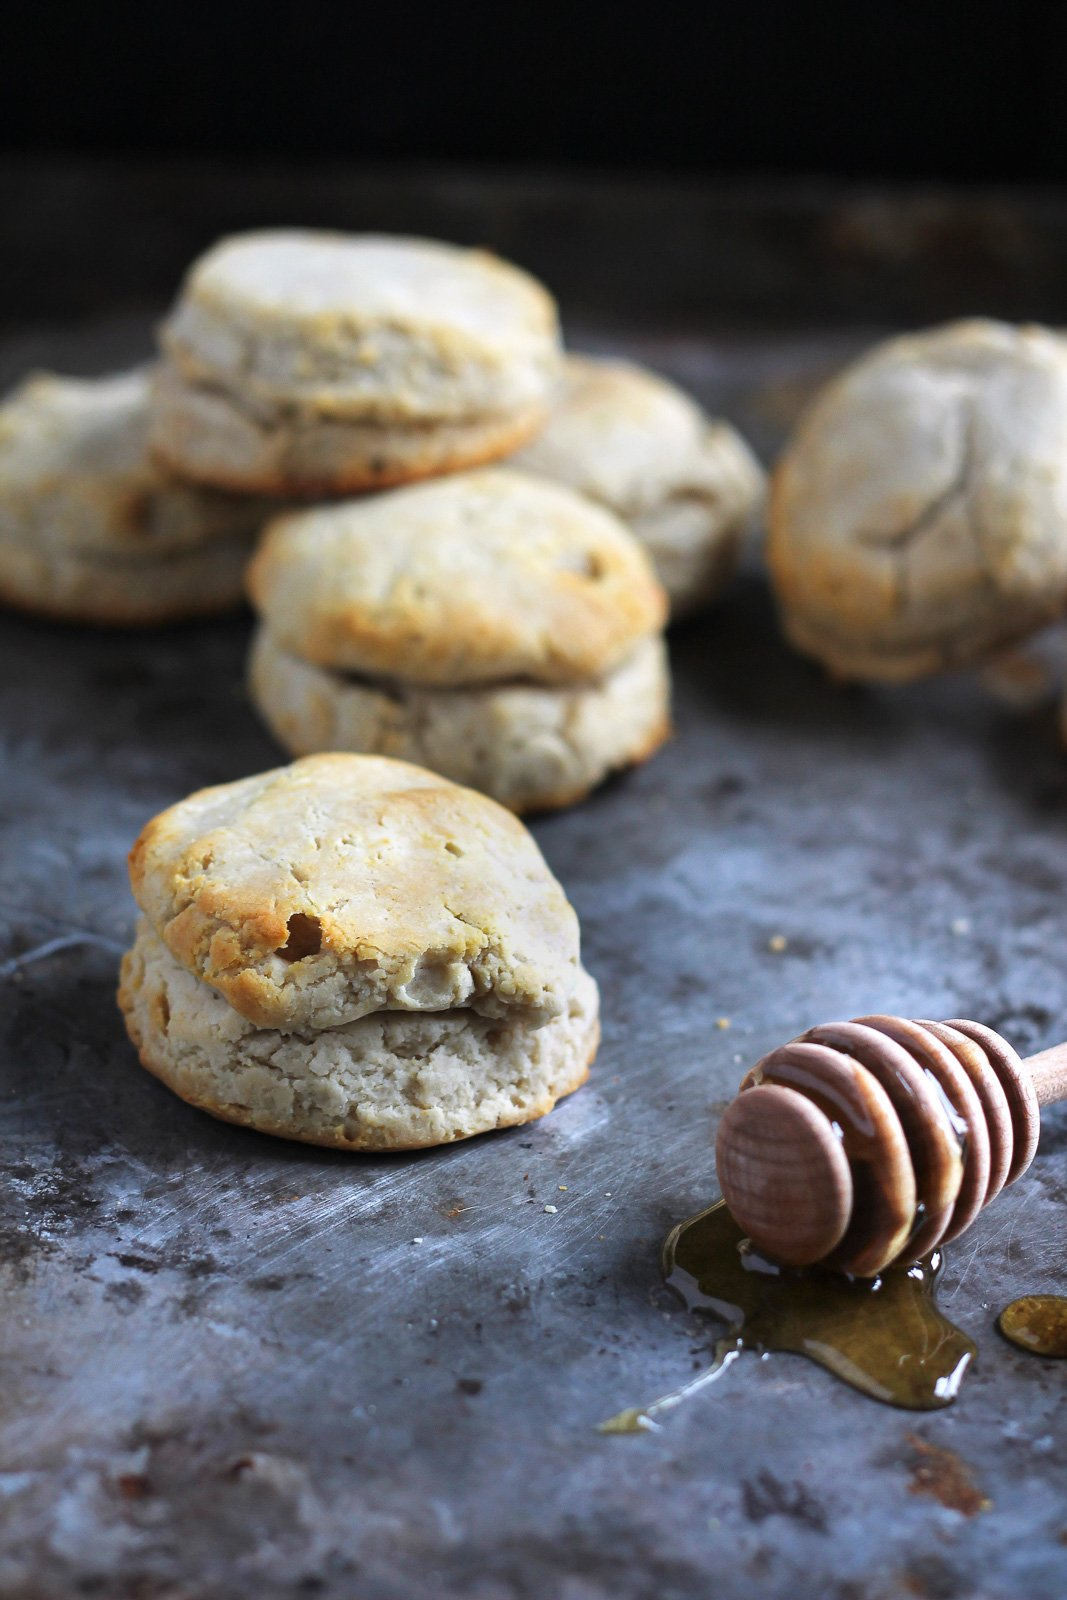 Delicious fluffy biscuits that are both dairy free and gluten free! These are amazing with fresh raspberry jam or a drizzle of honey on top.